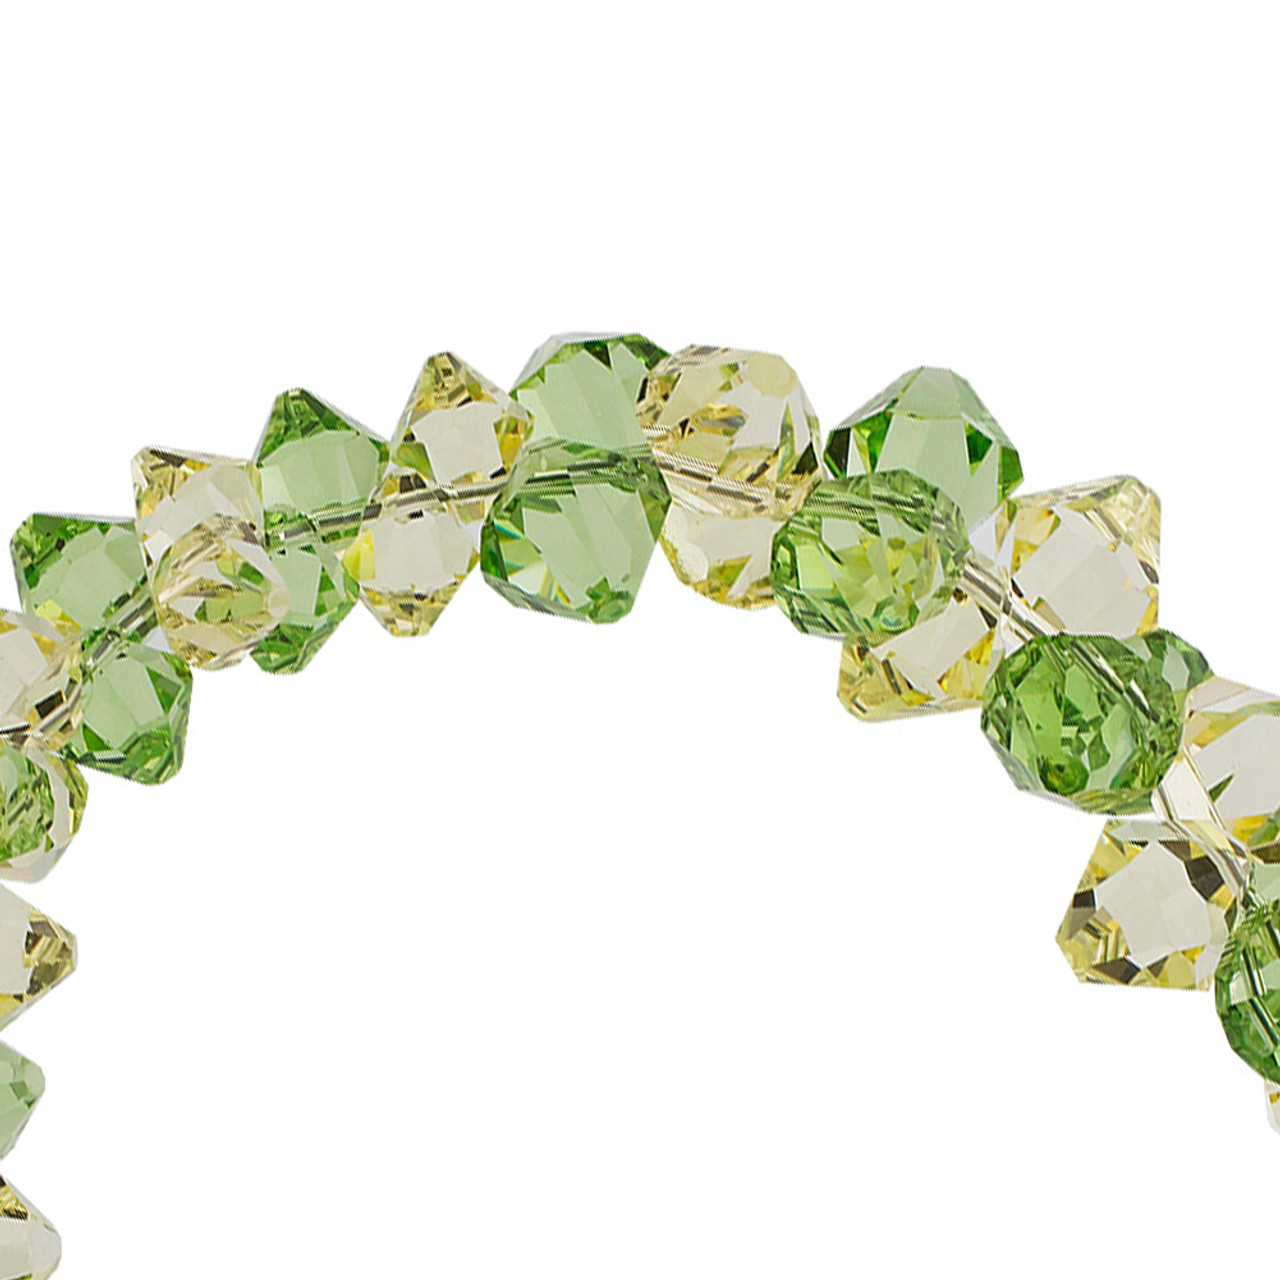 Cluster Style Swarovski Elements Green and Yellow Crystal 7.5 inch Bracelet